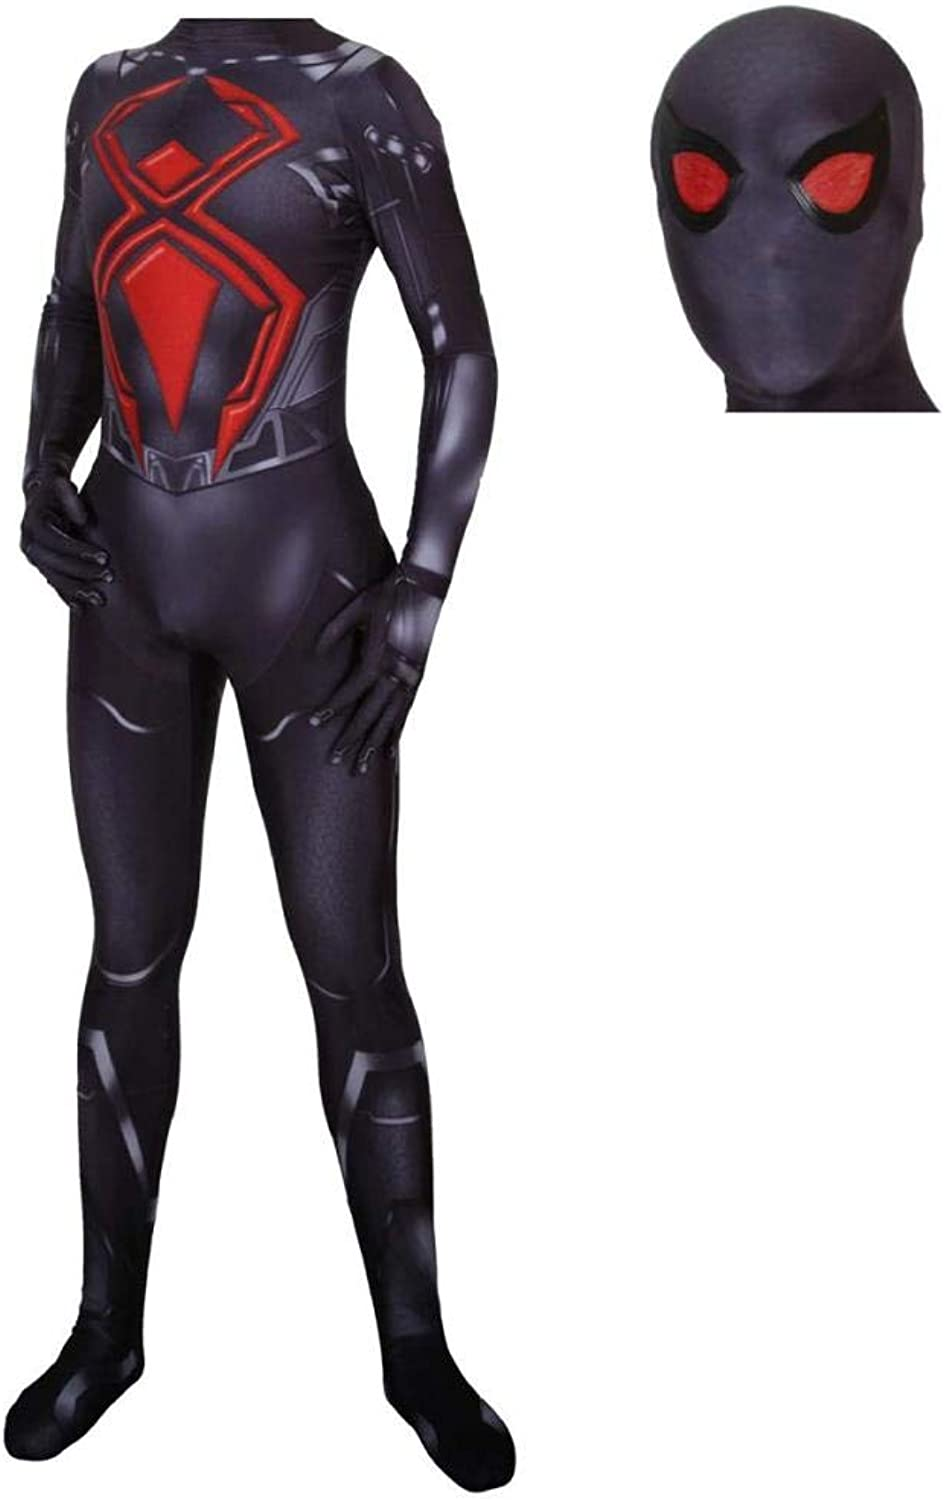 LCRBT Spiderman Cosplay Costume Suit Fancy Dress Costume Role Play Clothing Bodysuit,XXLarge Black